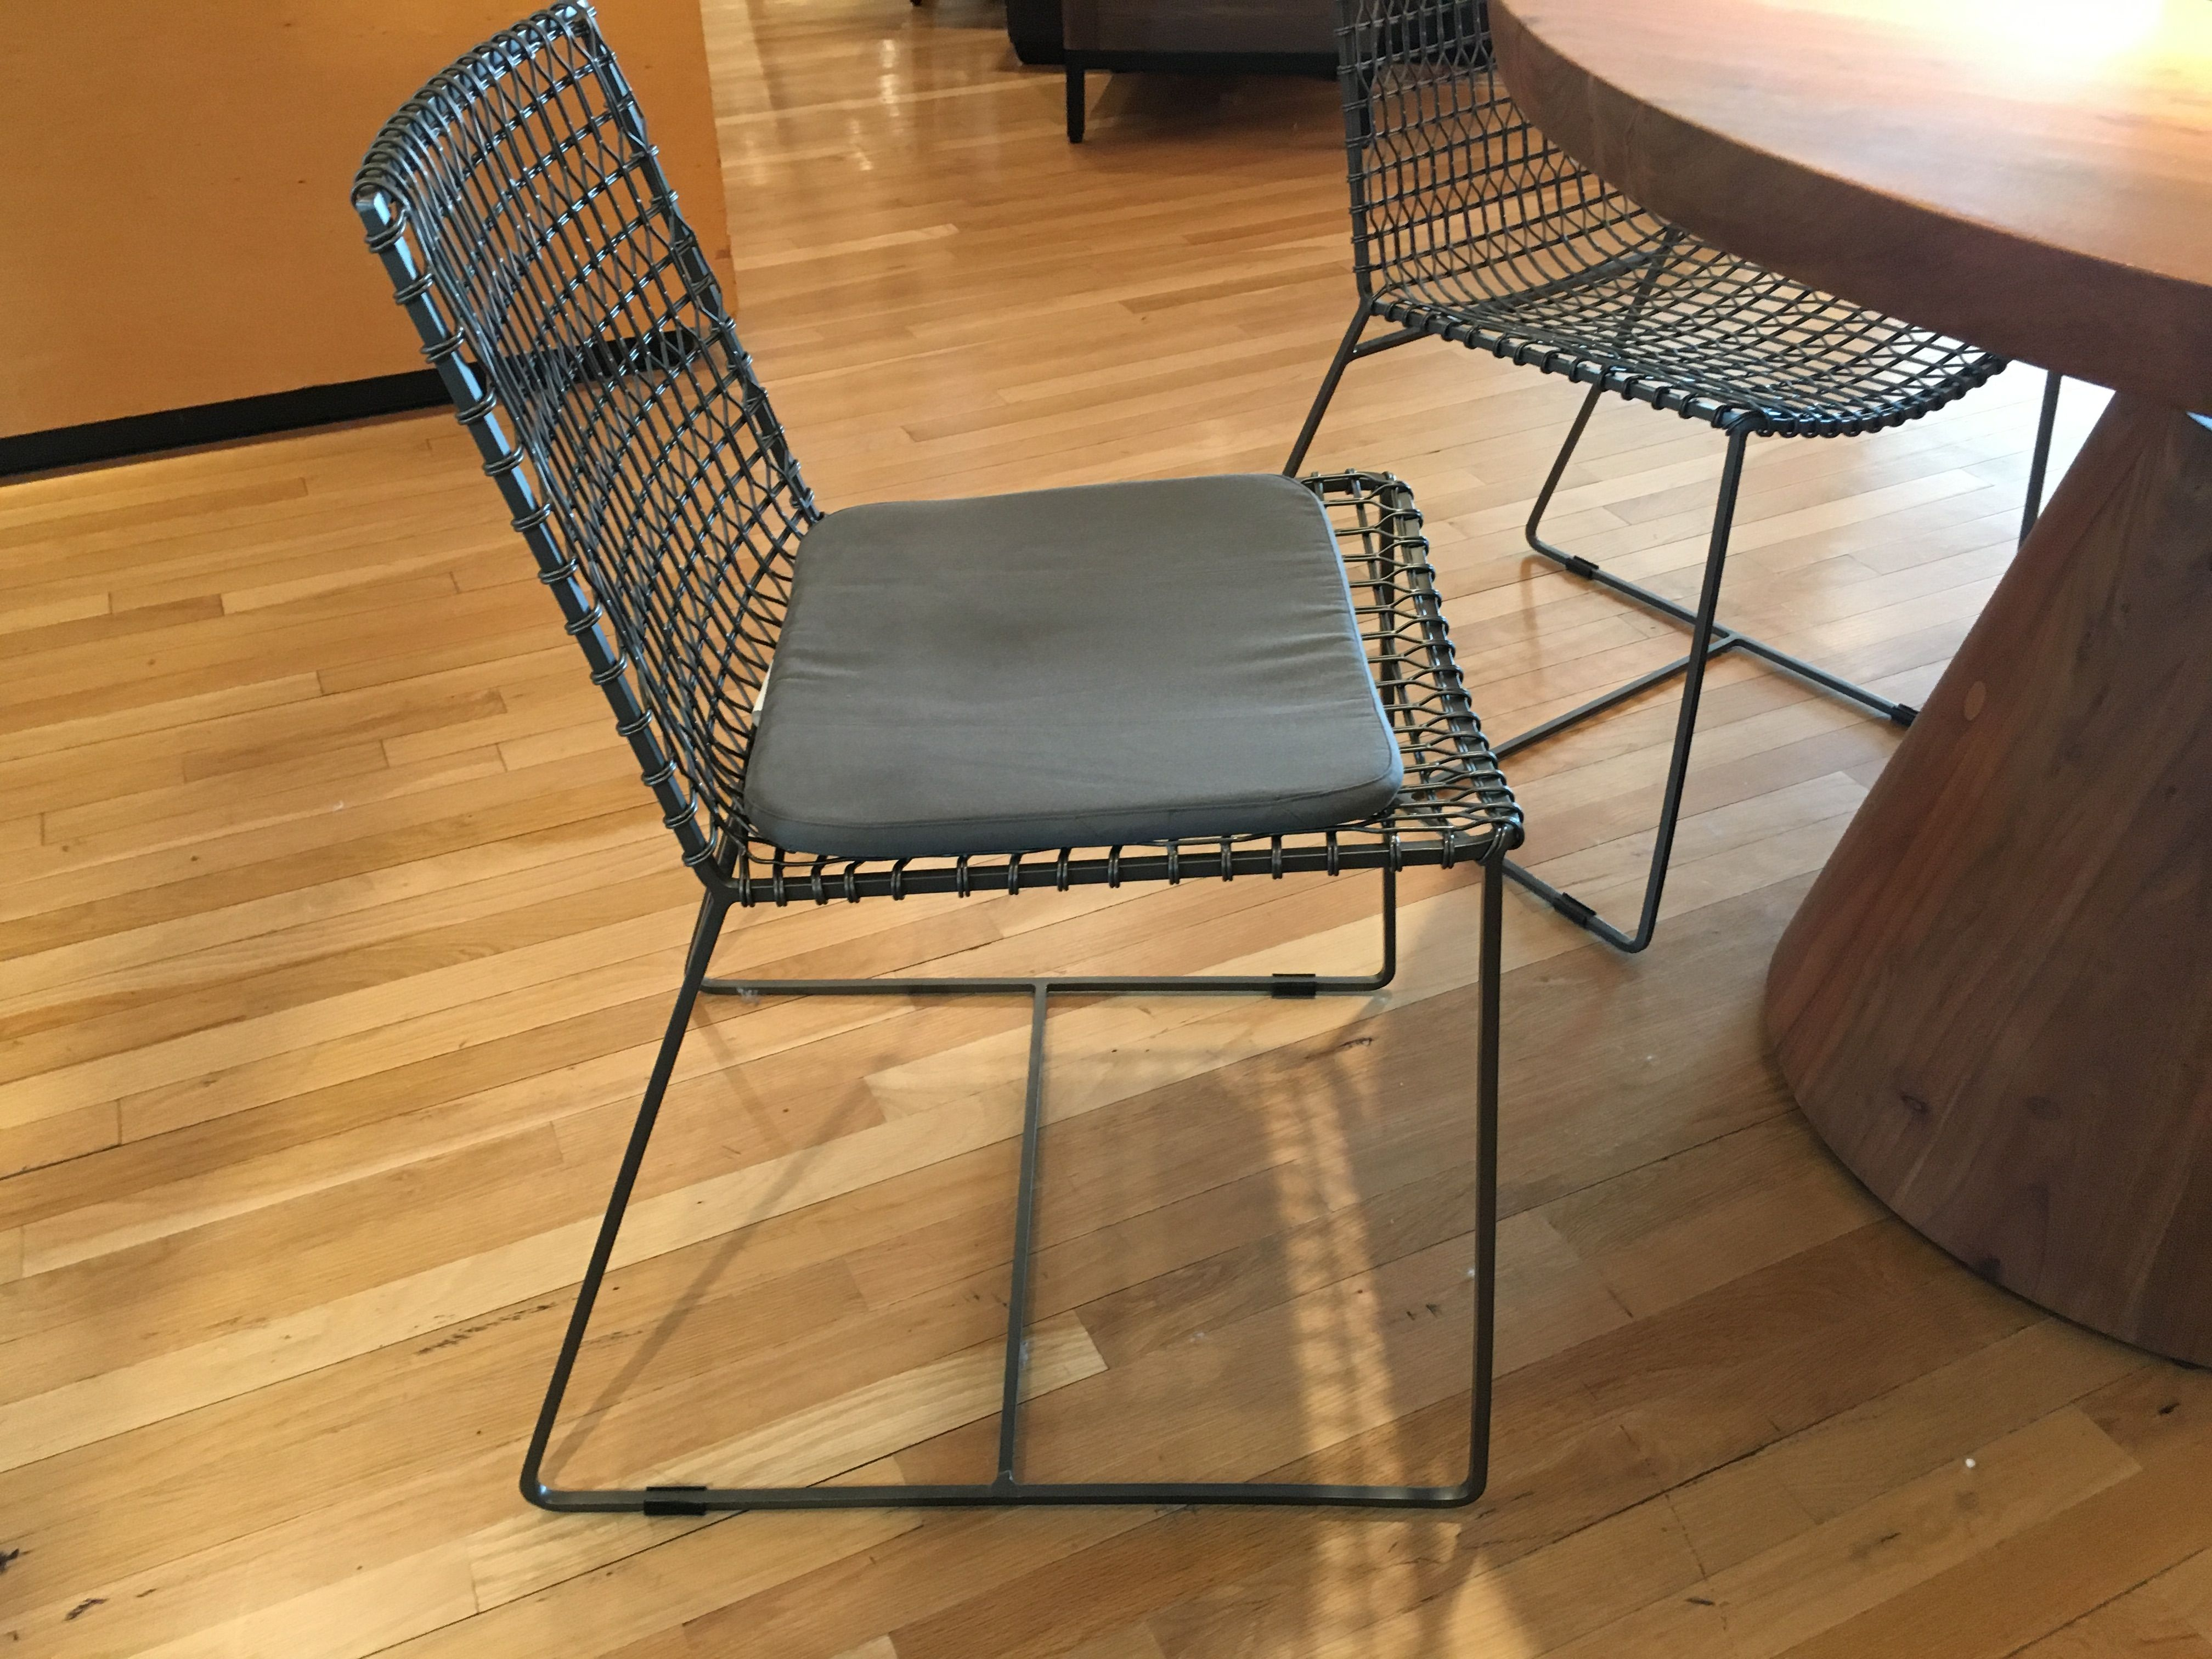 Tig Graphite Dining Chair 199 Brown Leather Cushion 49 95 Crate And Barrel Dining Chairs Dining Chair